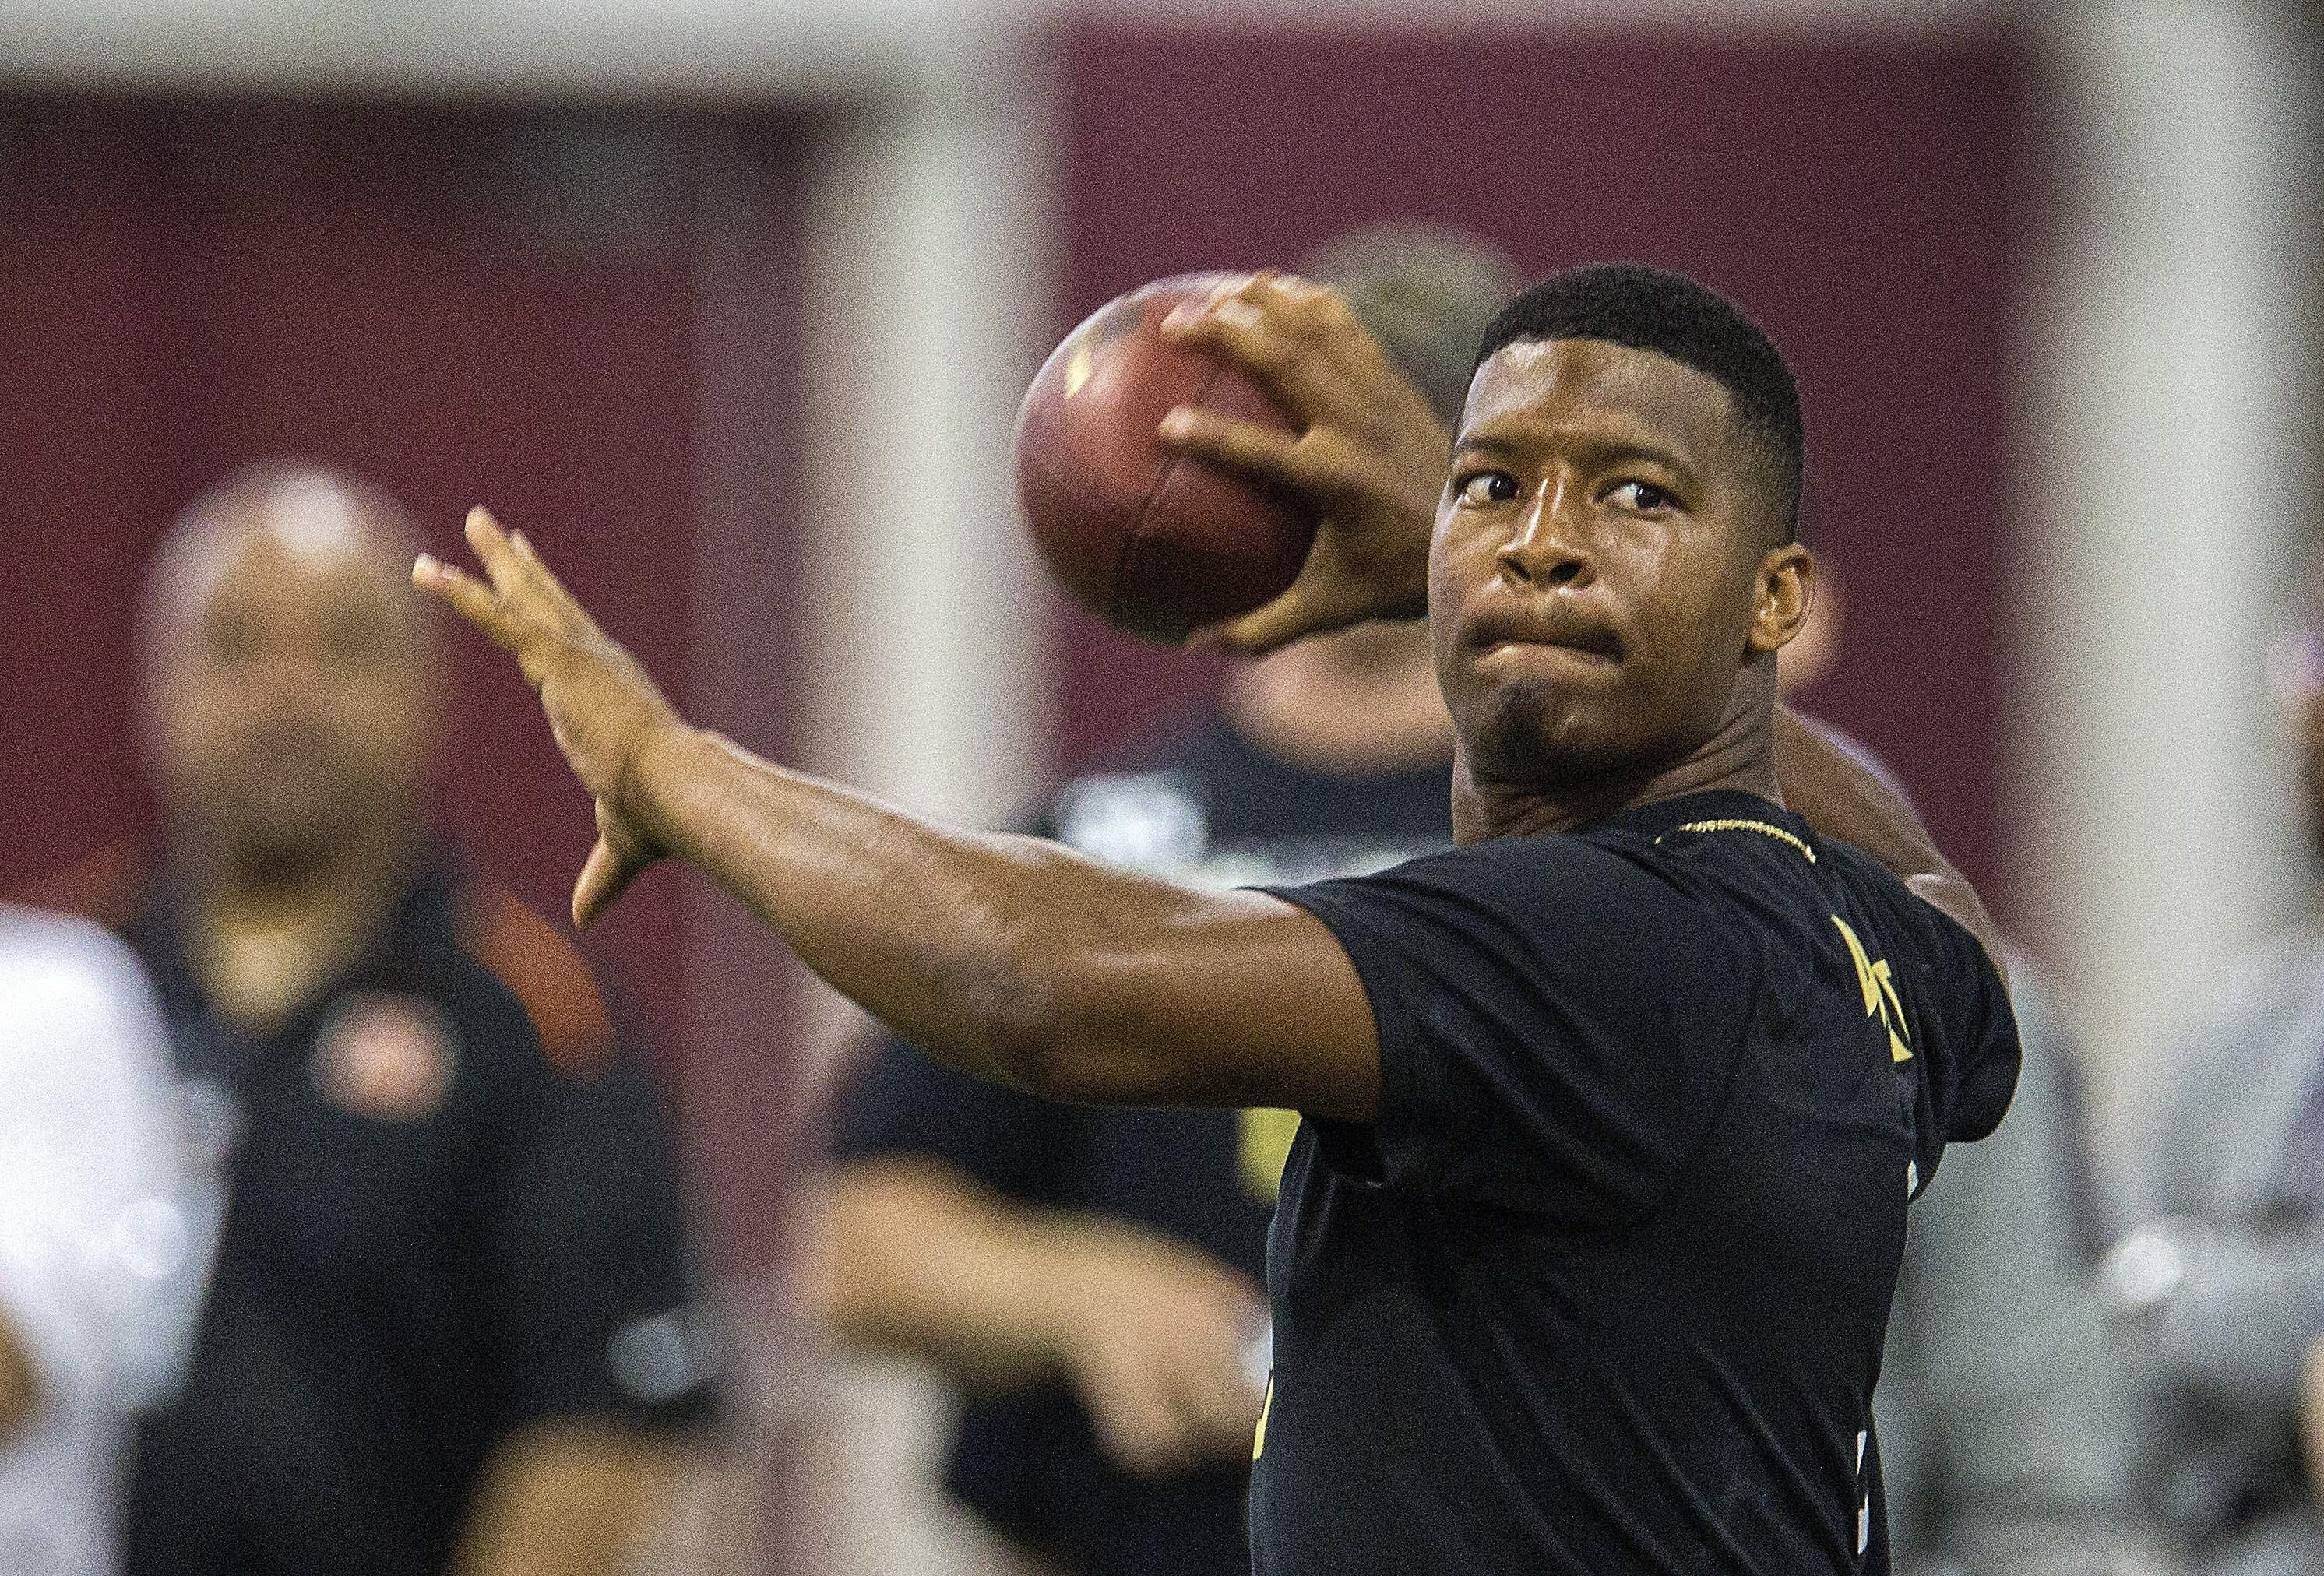 Will Jameis Winston Spark More Thoughts Of John Elway Or